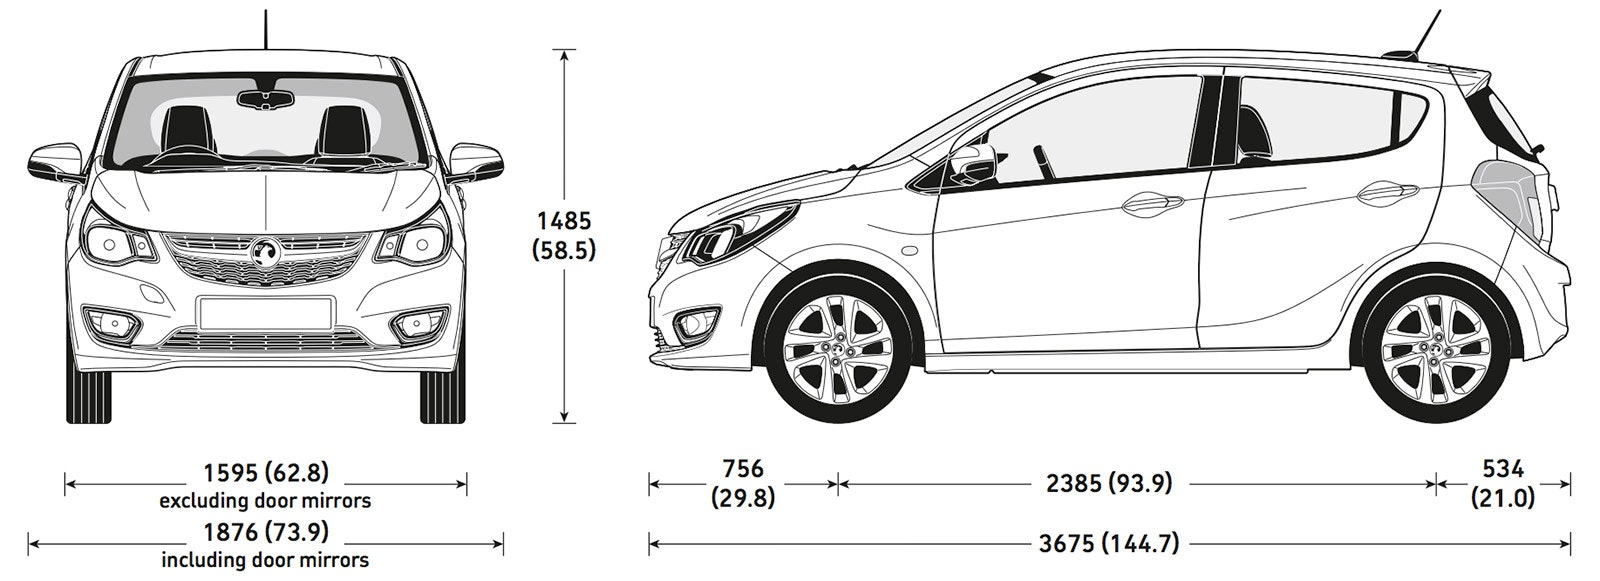 Vauxhall Viva Sizes And Dimensions Guide Carwow